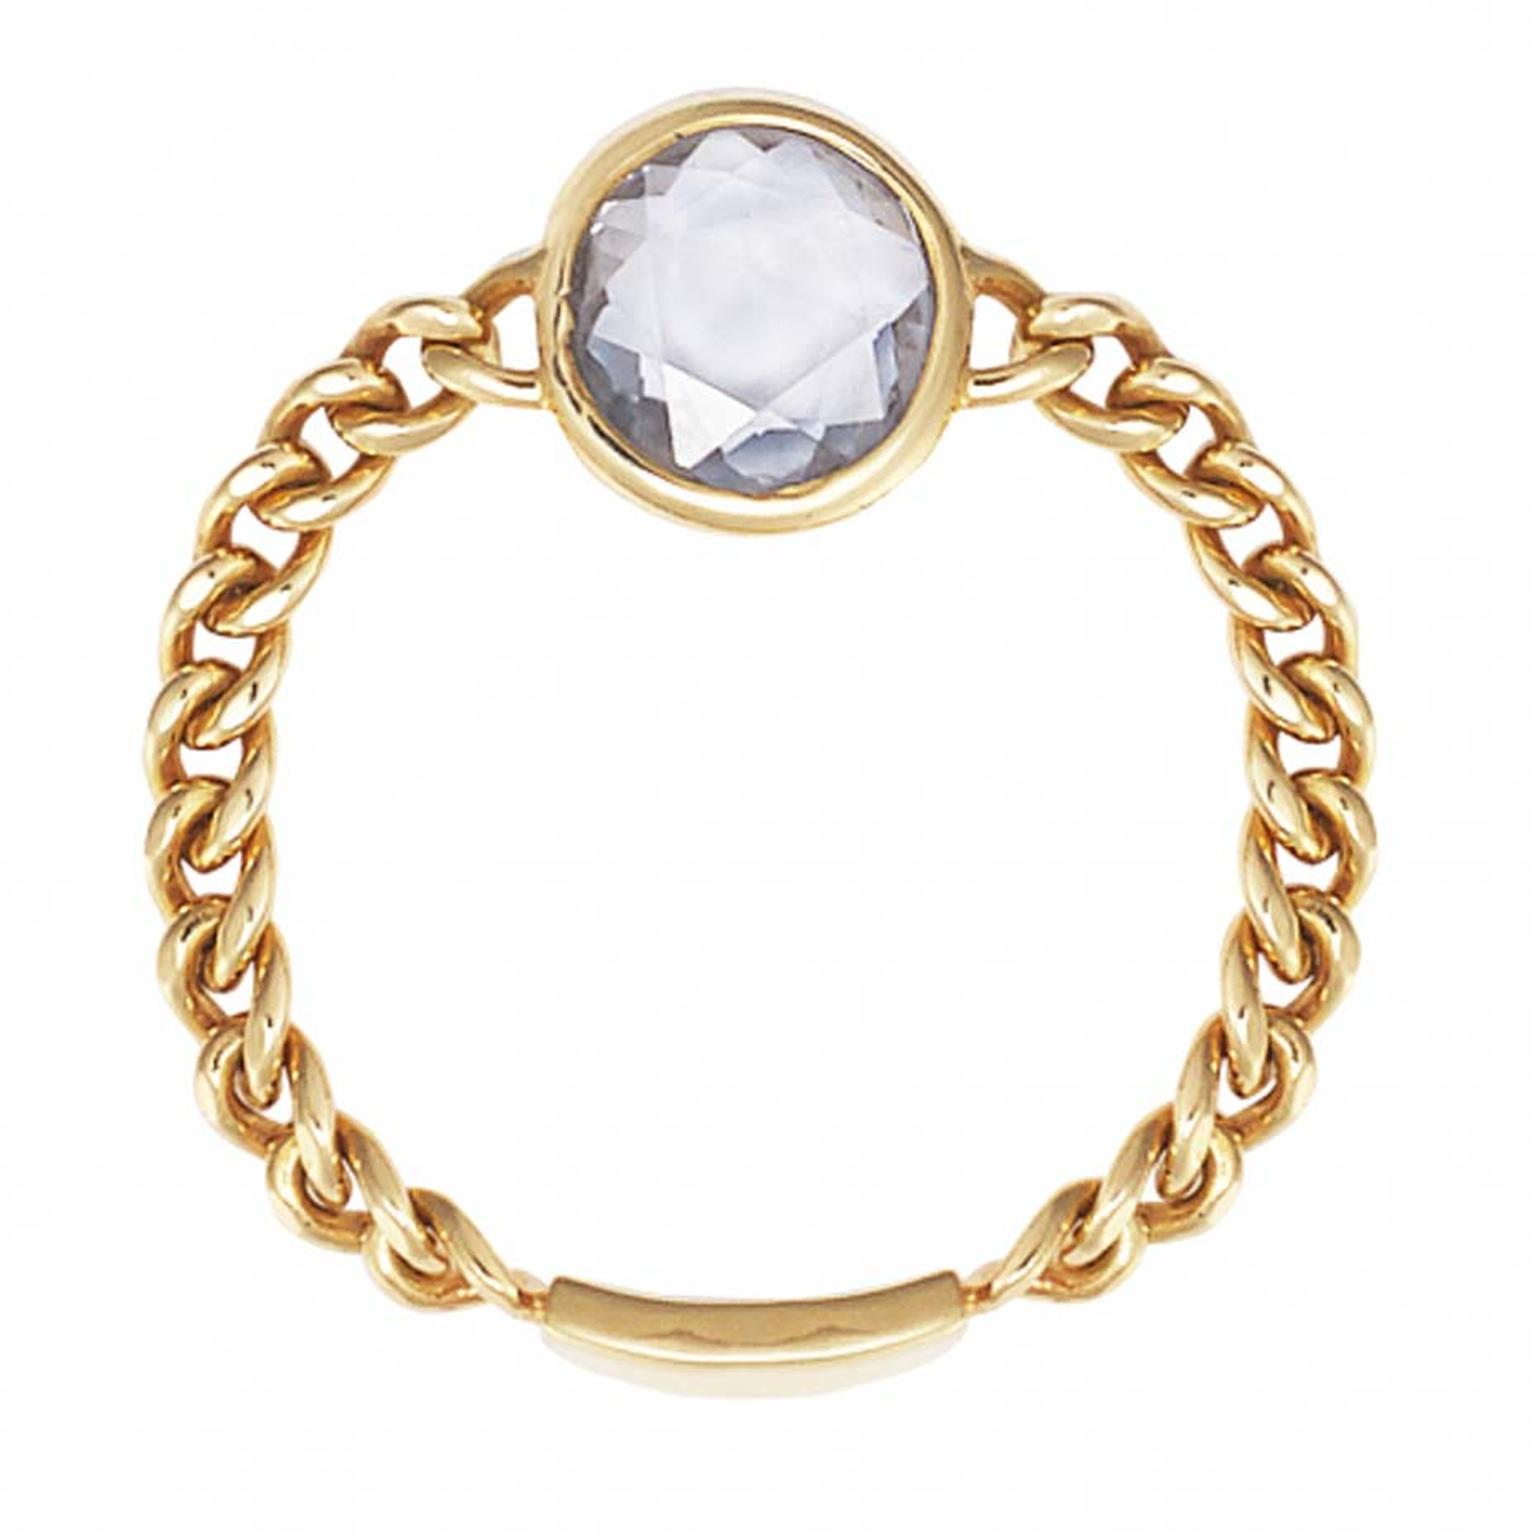 Sweet Pea rose-cut blue sapphire Chain ring in gold.